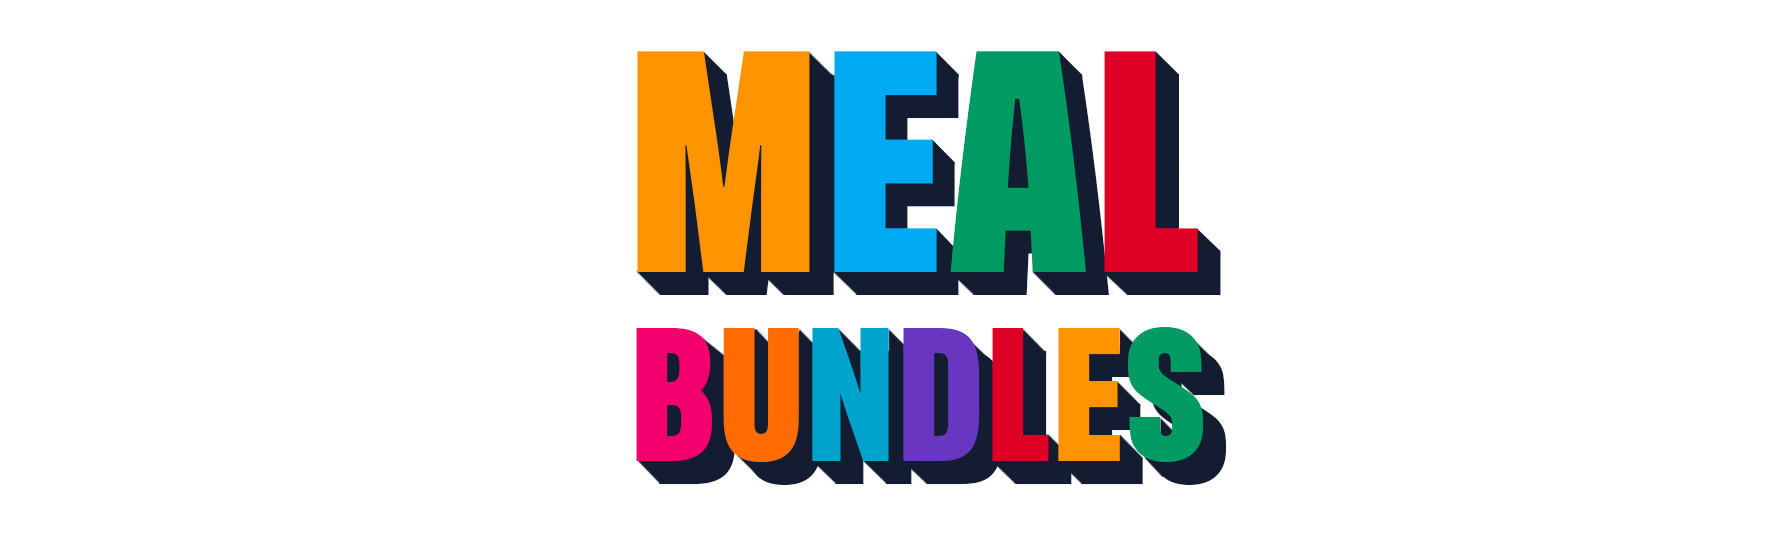 meal bundles